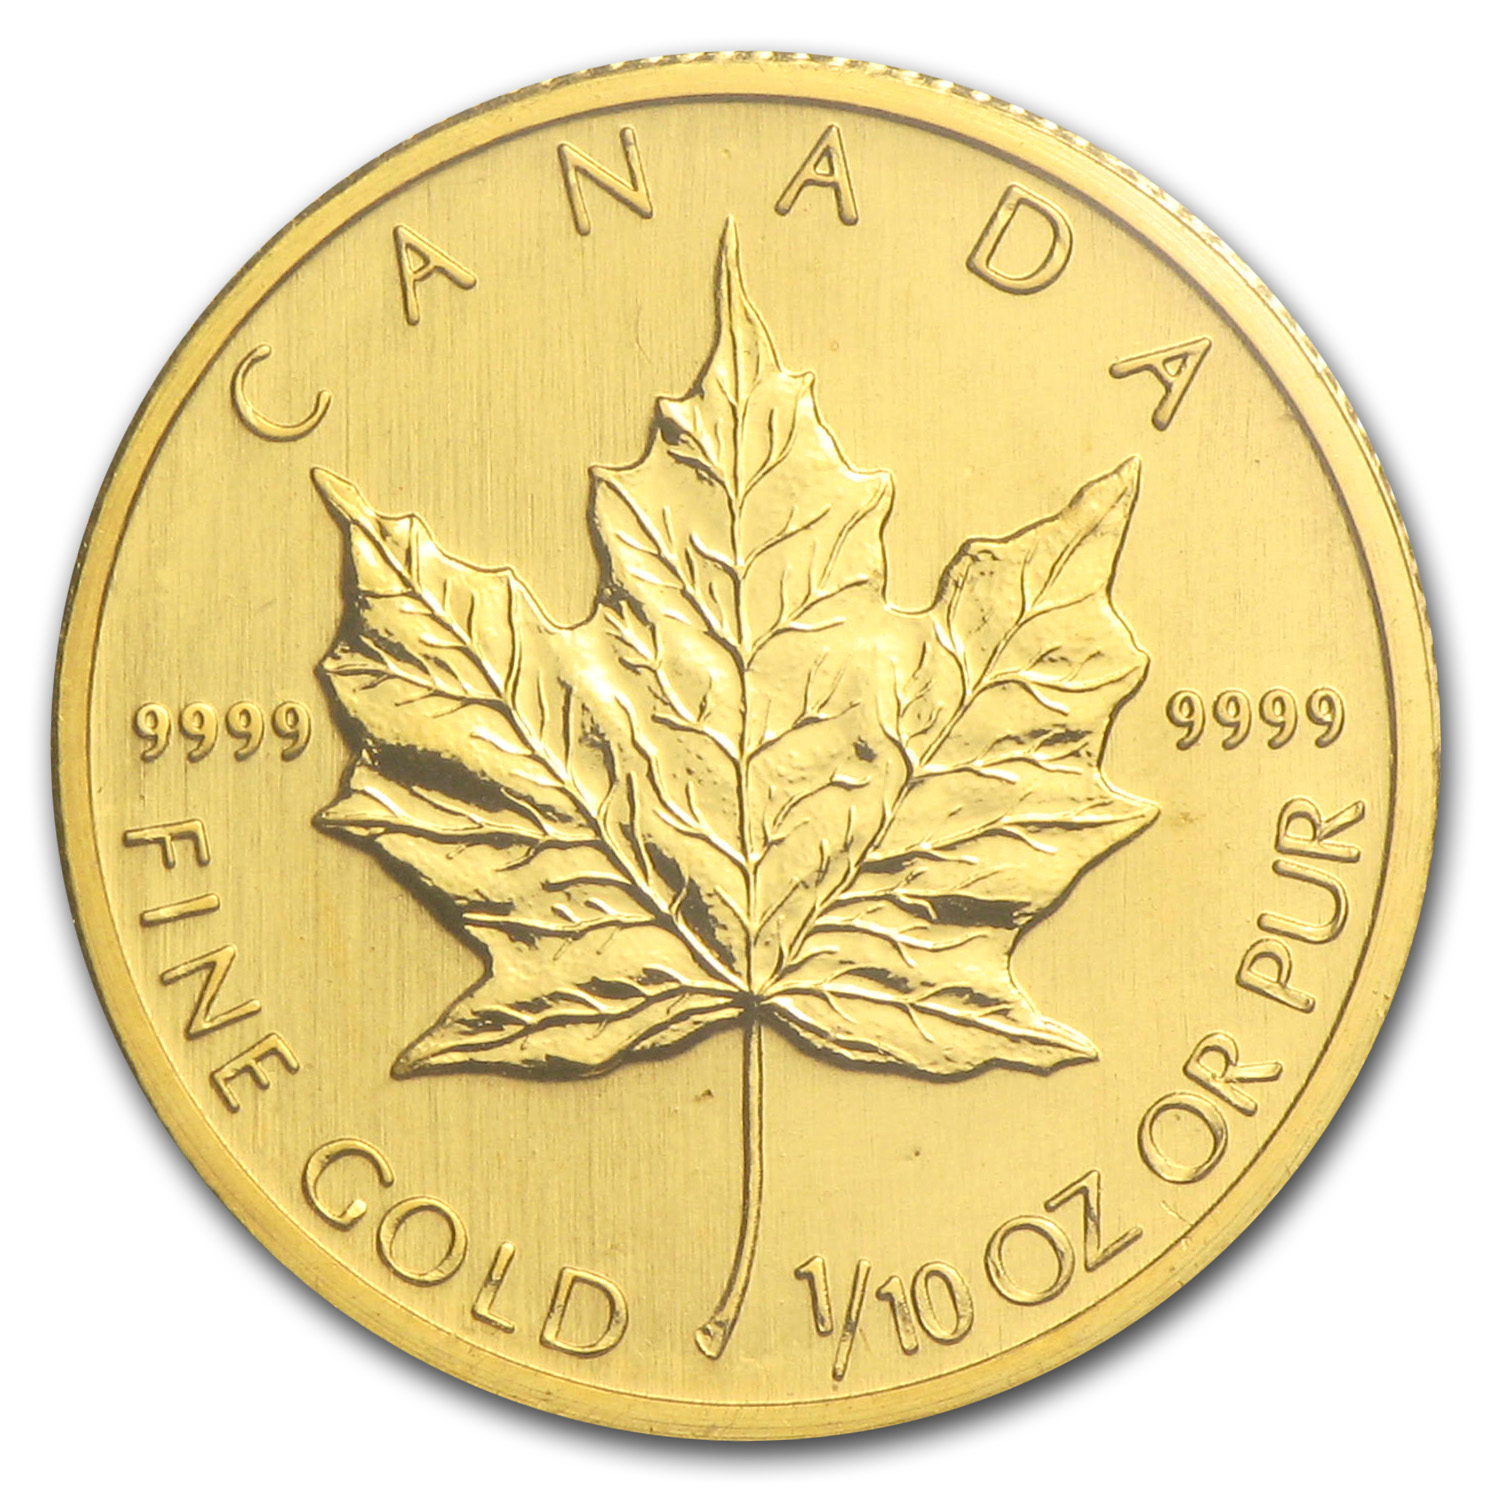 2008 Canada 1/10 oz Gold Maple Leaf BU